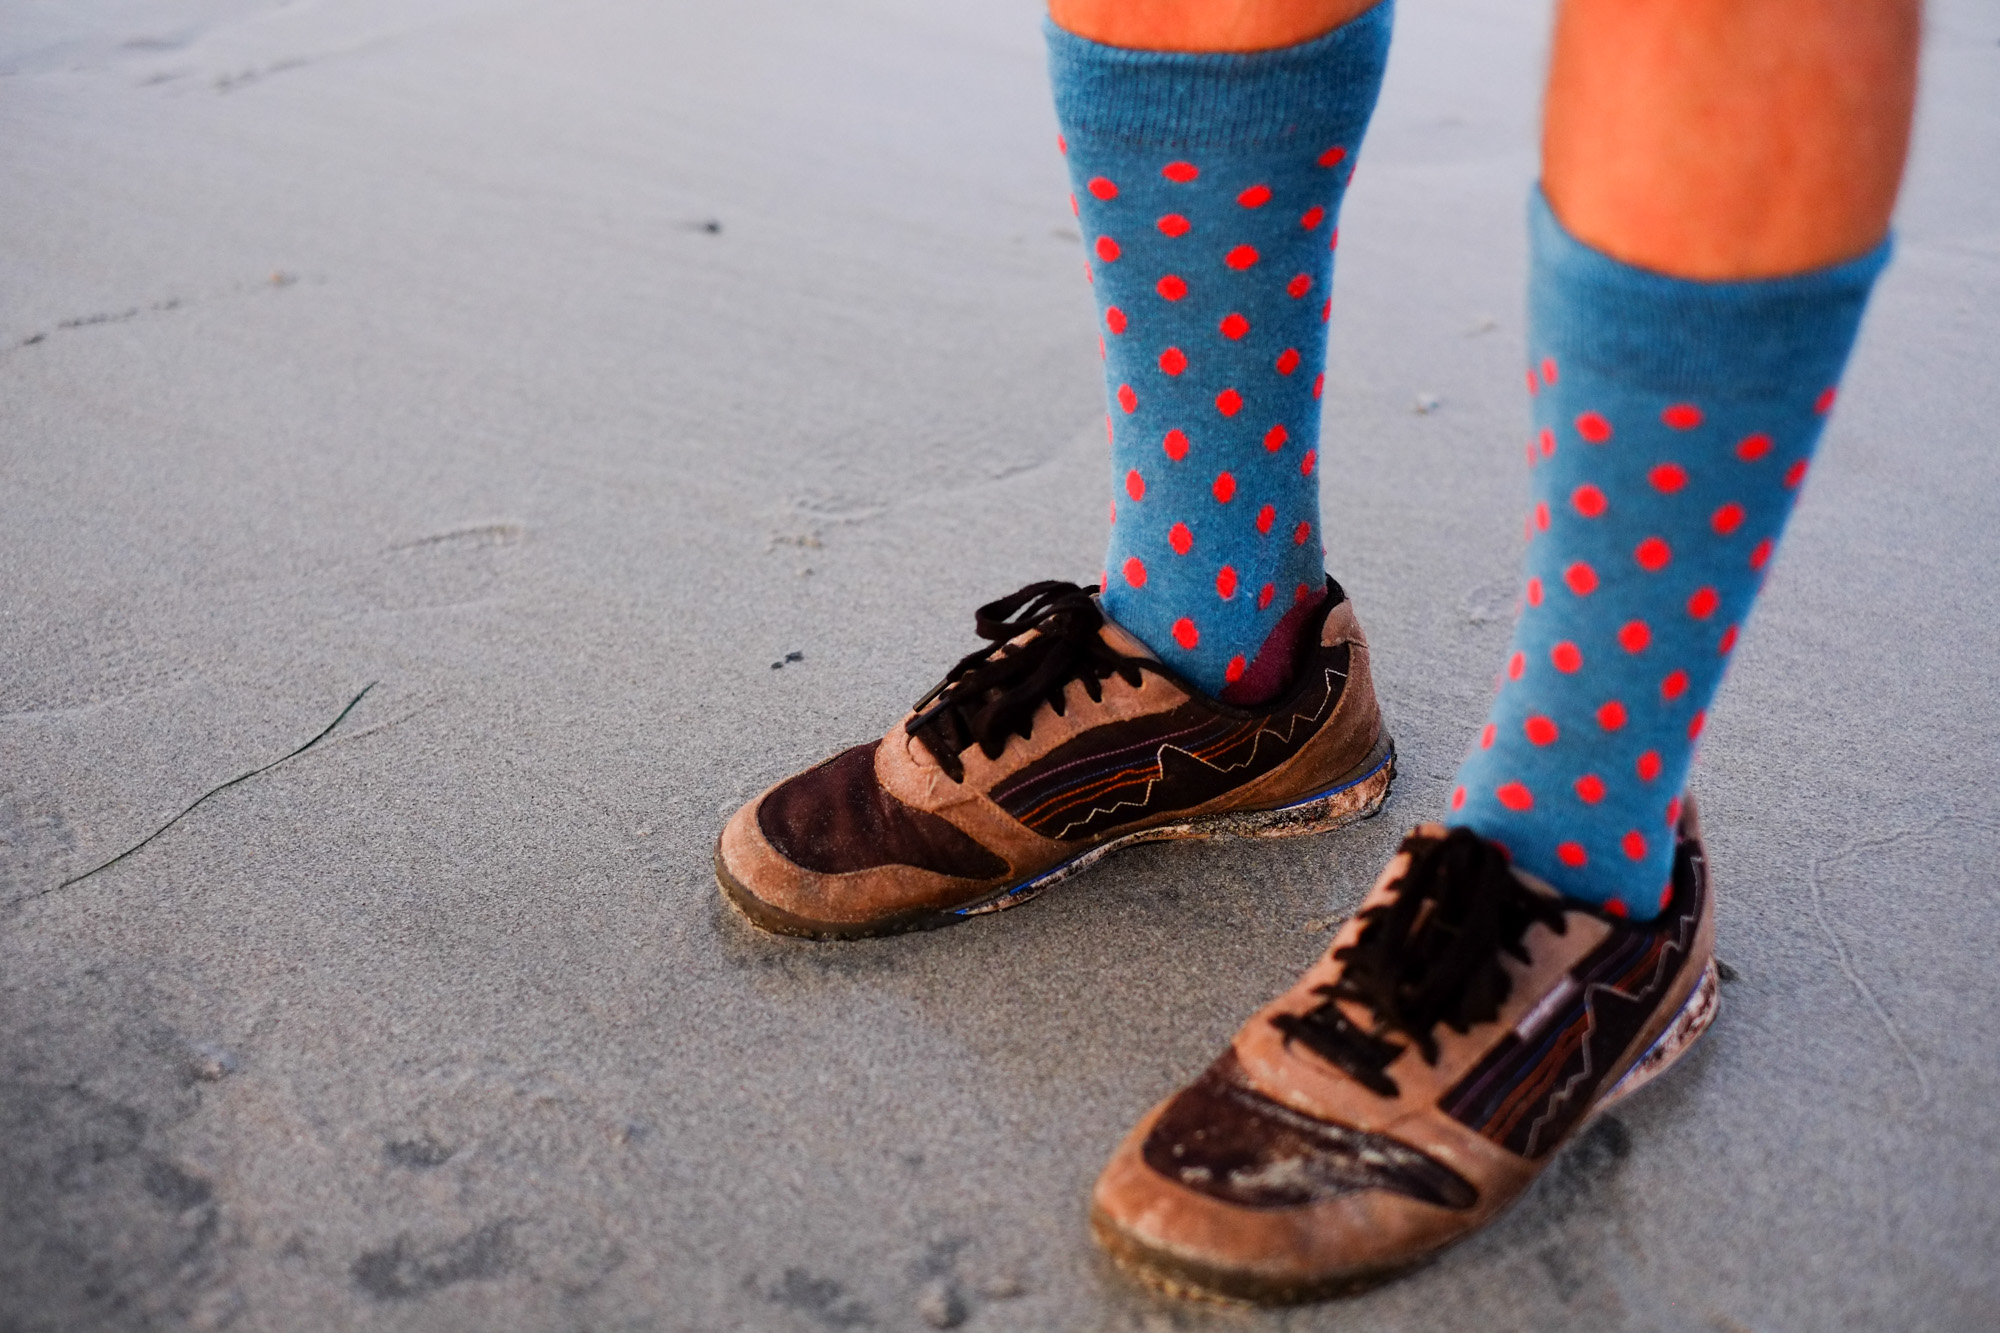 A man with colorful socks and Patagonia shoes.